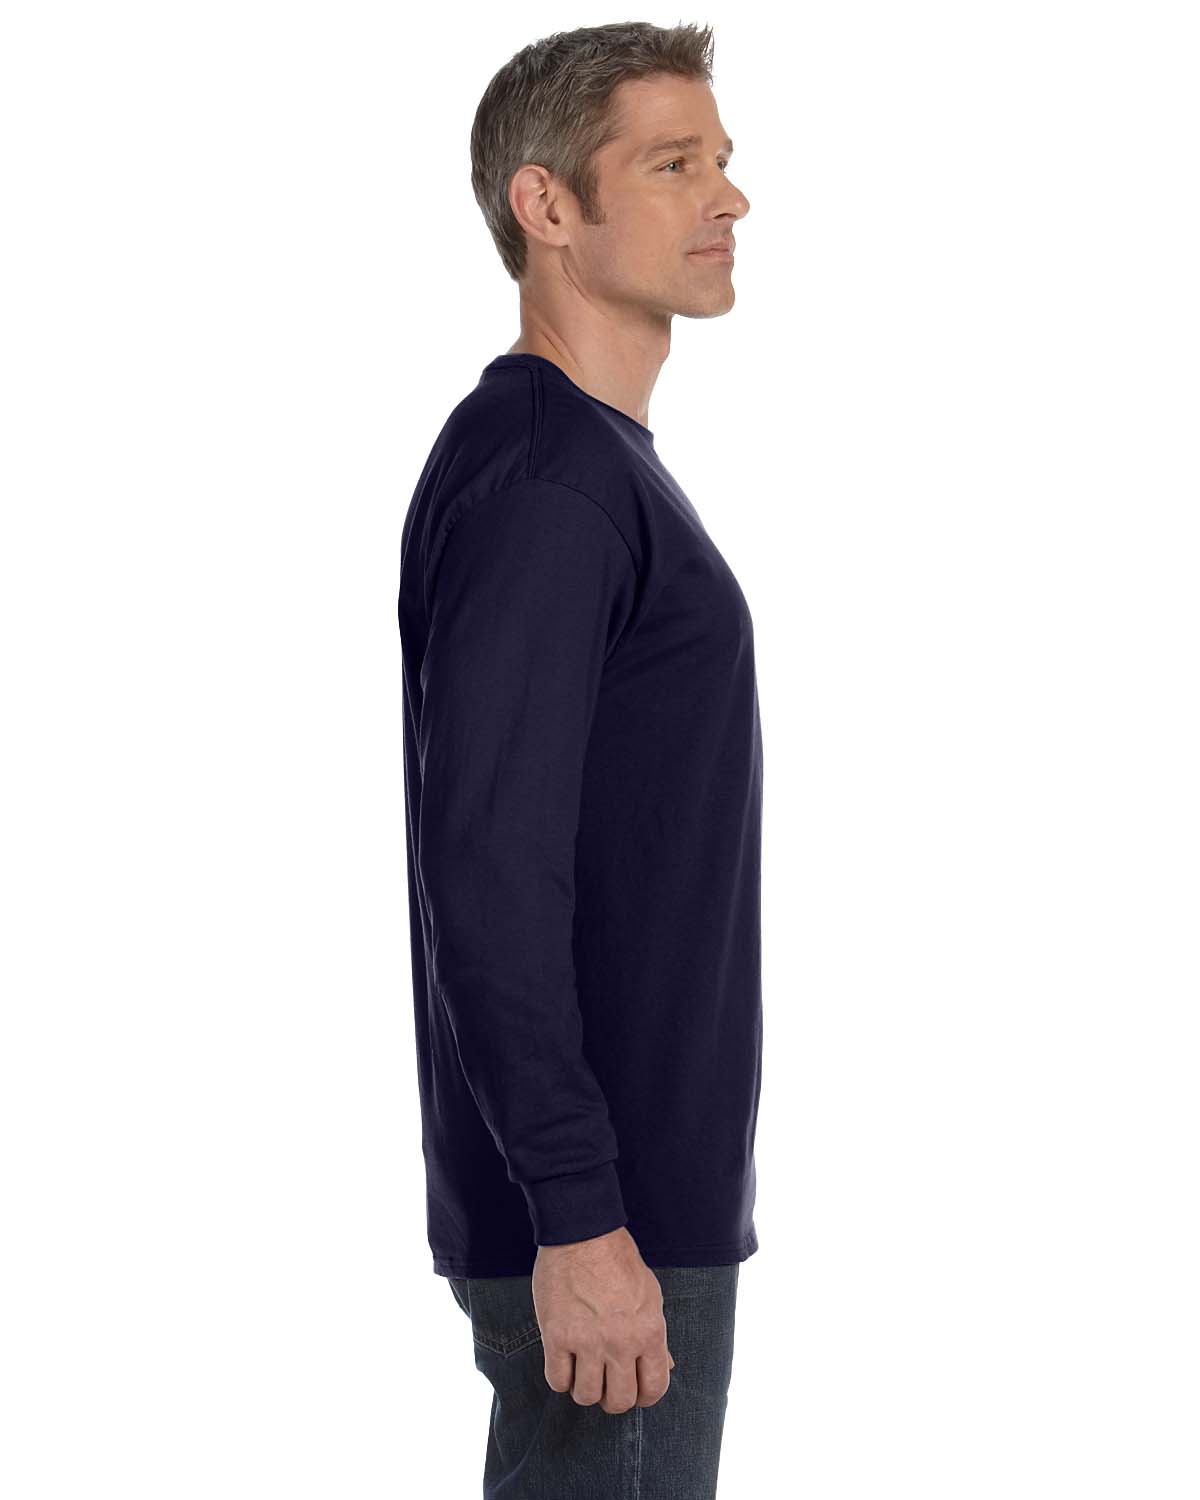 Gildan-Mens-T-Shirt-Long-Sleeve-Heavy-Cotton-5-3-oz-S-XL-R-G540-5400 thumbnail 36